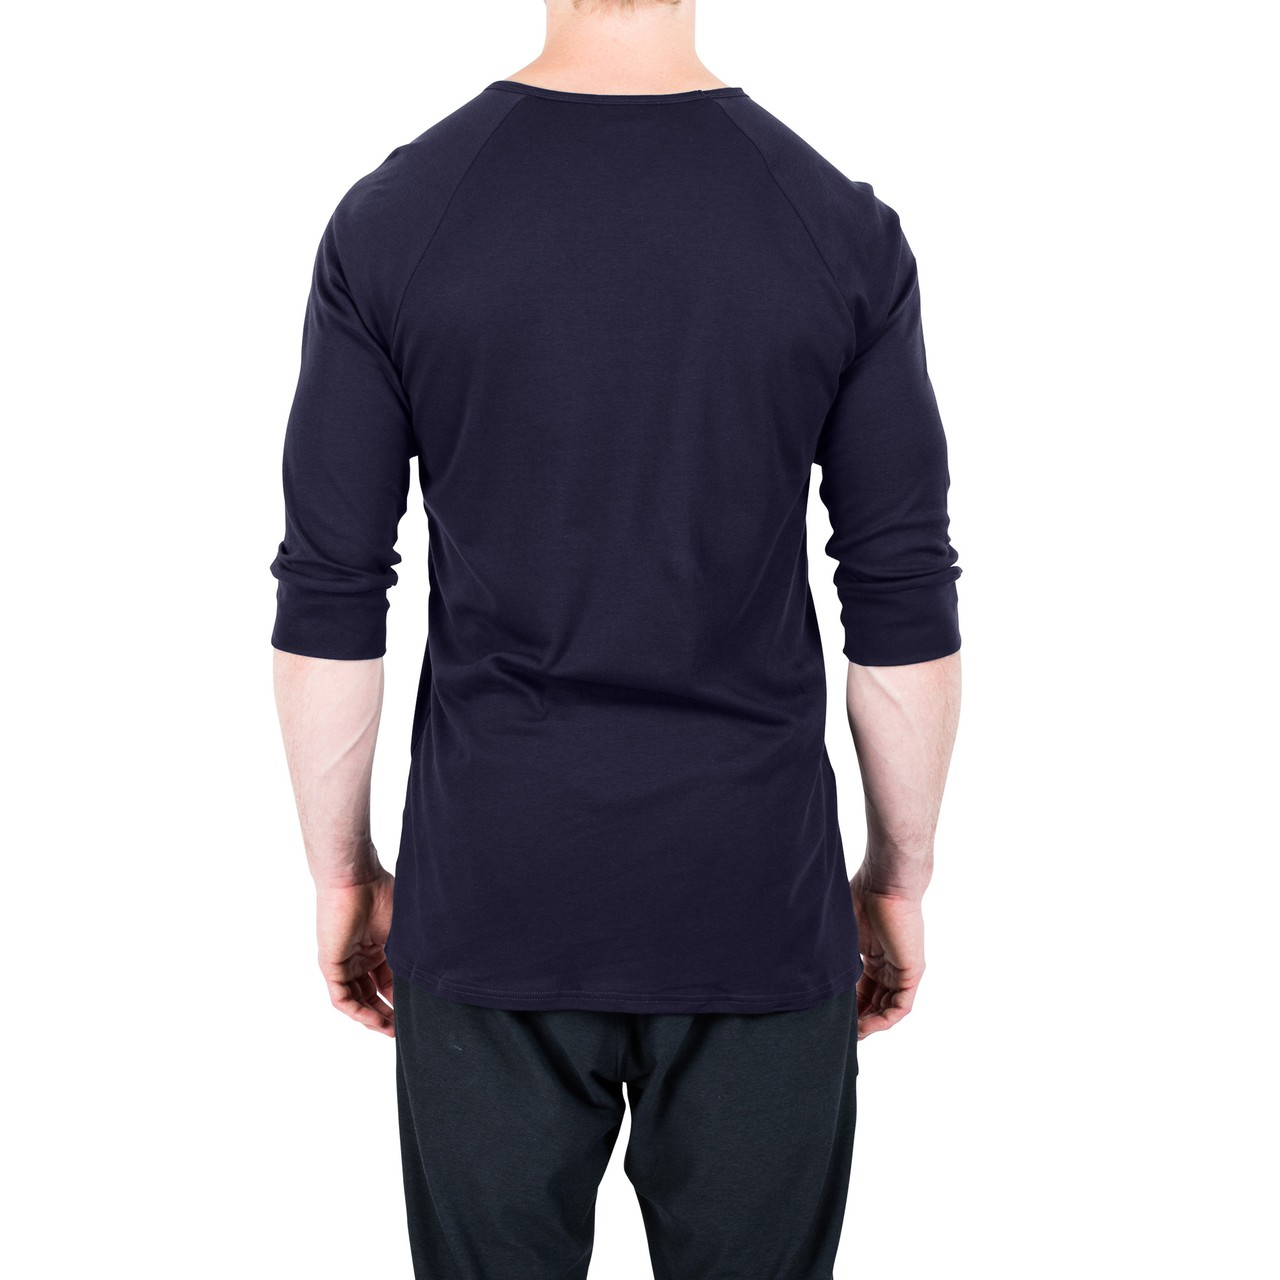 The White Briefs Anchovy 3/4 Sleeve T-Shirt Dark Navy